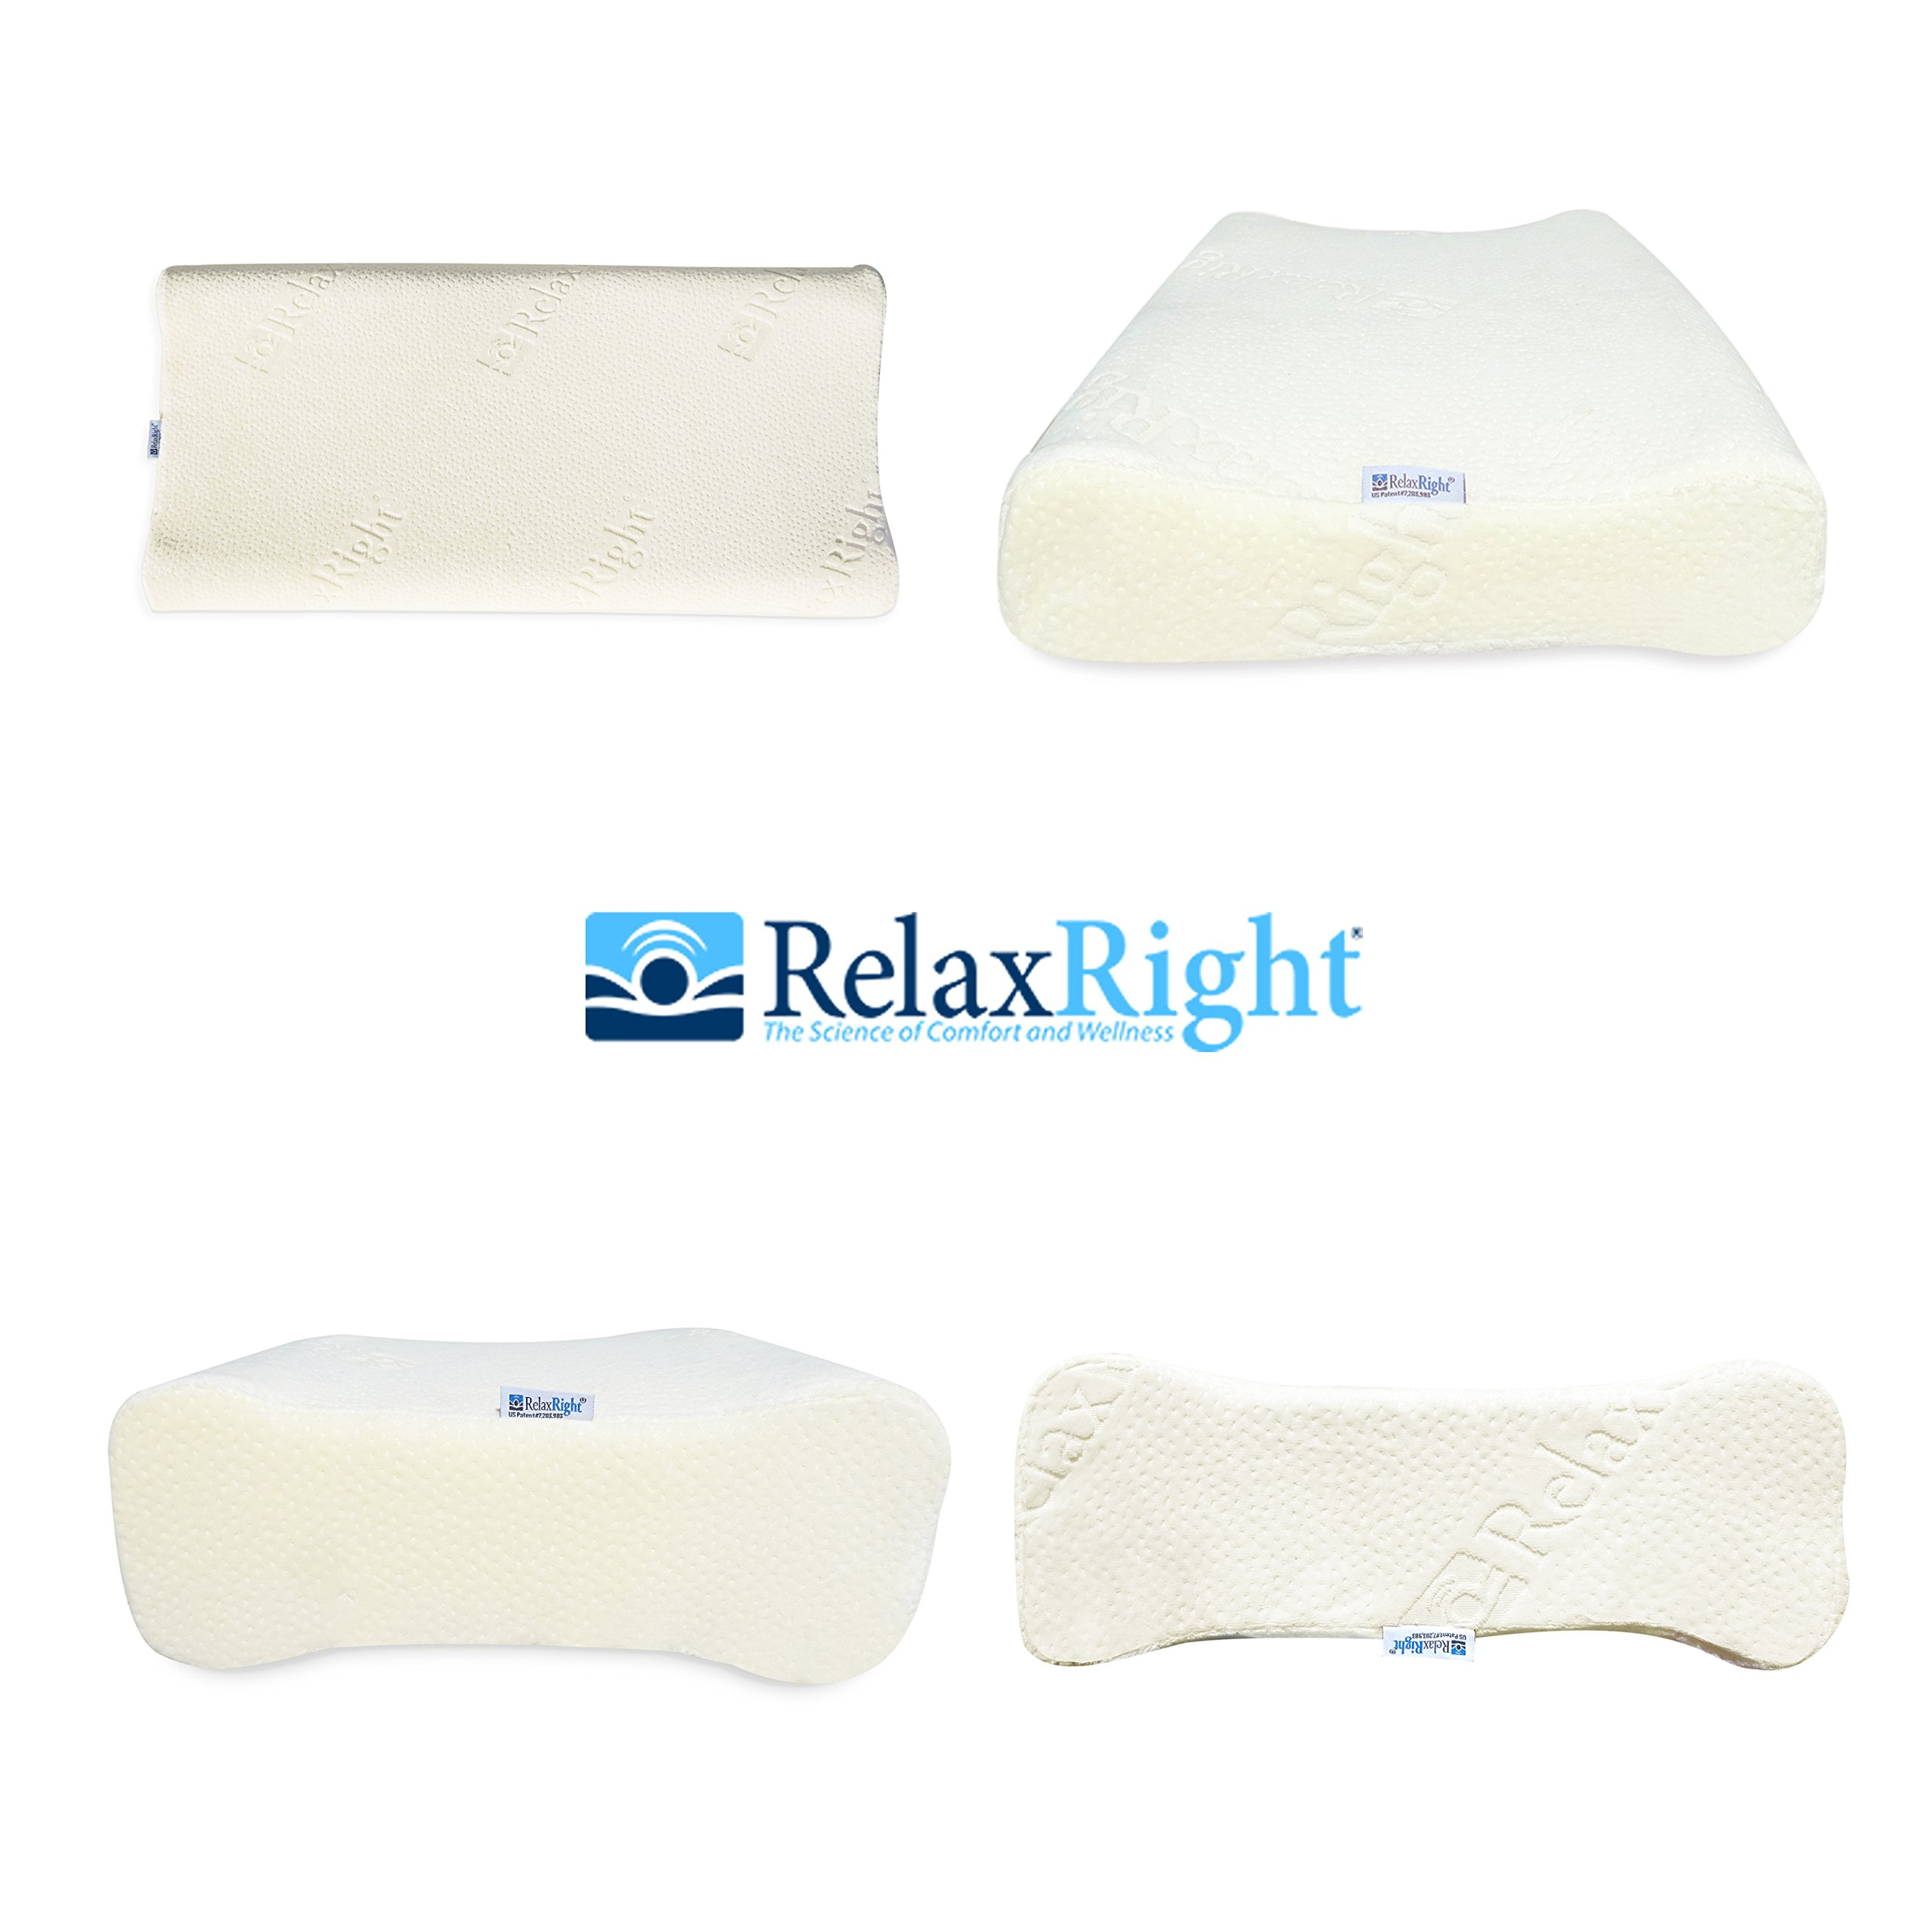 Relax Right (Big Kid Pillow, Specially Sized to Fit a Big Kid Ages 5 & Up, Highest Grade of Memory Foam with Antimicrobial Super Soft Velour Cover that's Breathable, Washable, Hypoallergenic